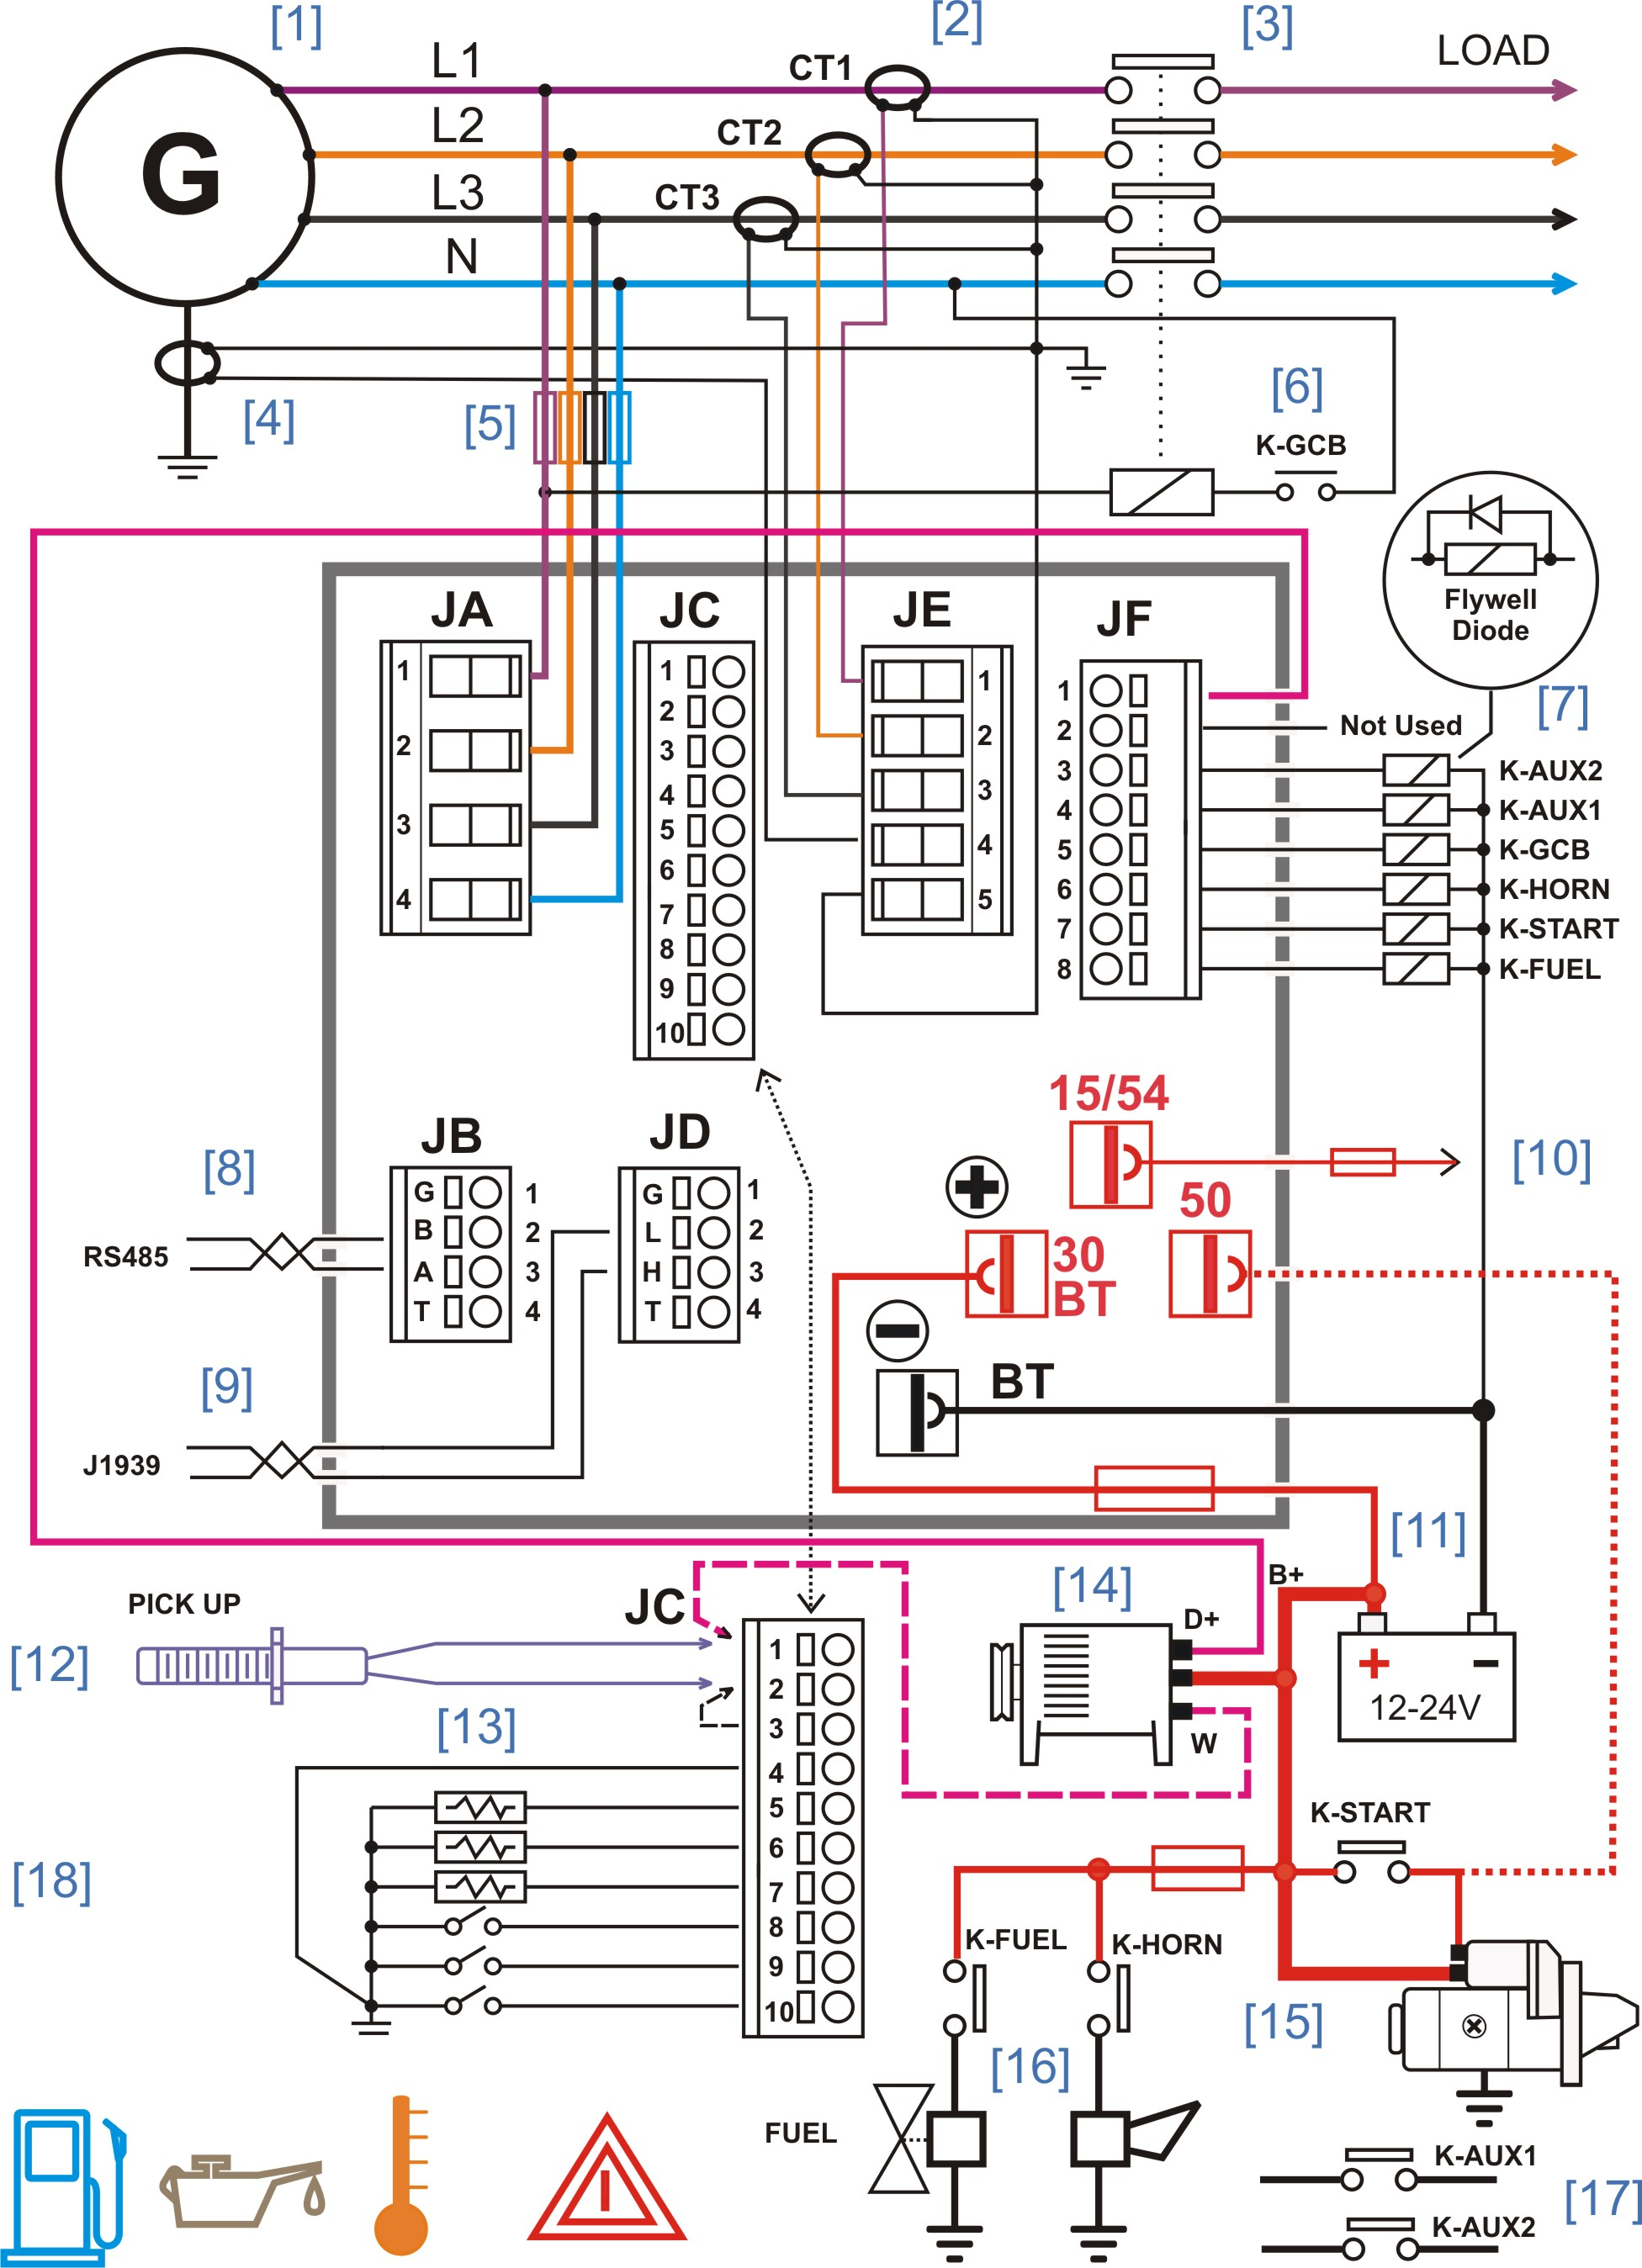 Generator Controller Wiring Diagram wiring diagram generator generator plug wiring diagram \u2022 free changeover switch wiring diagram generator at mifinder.co